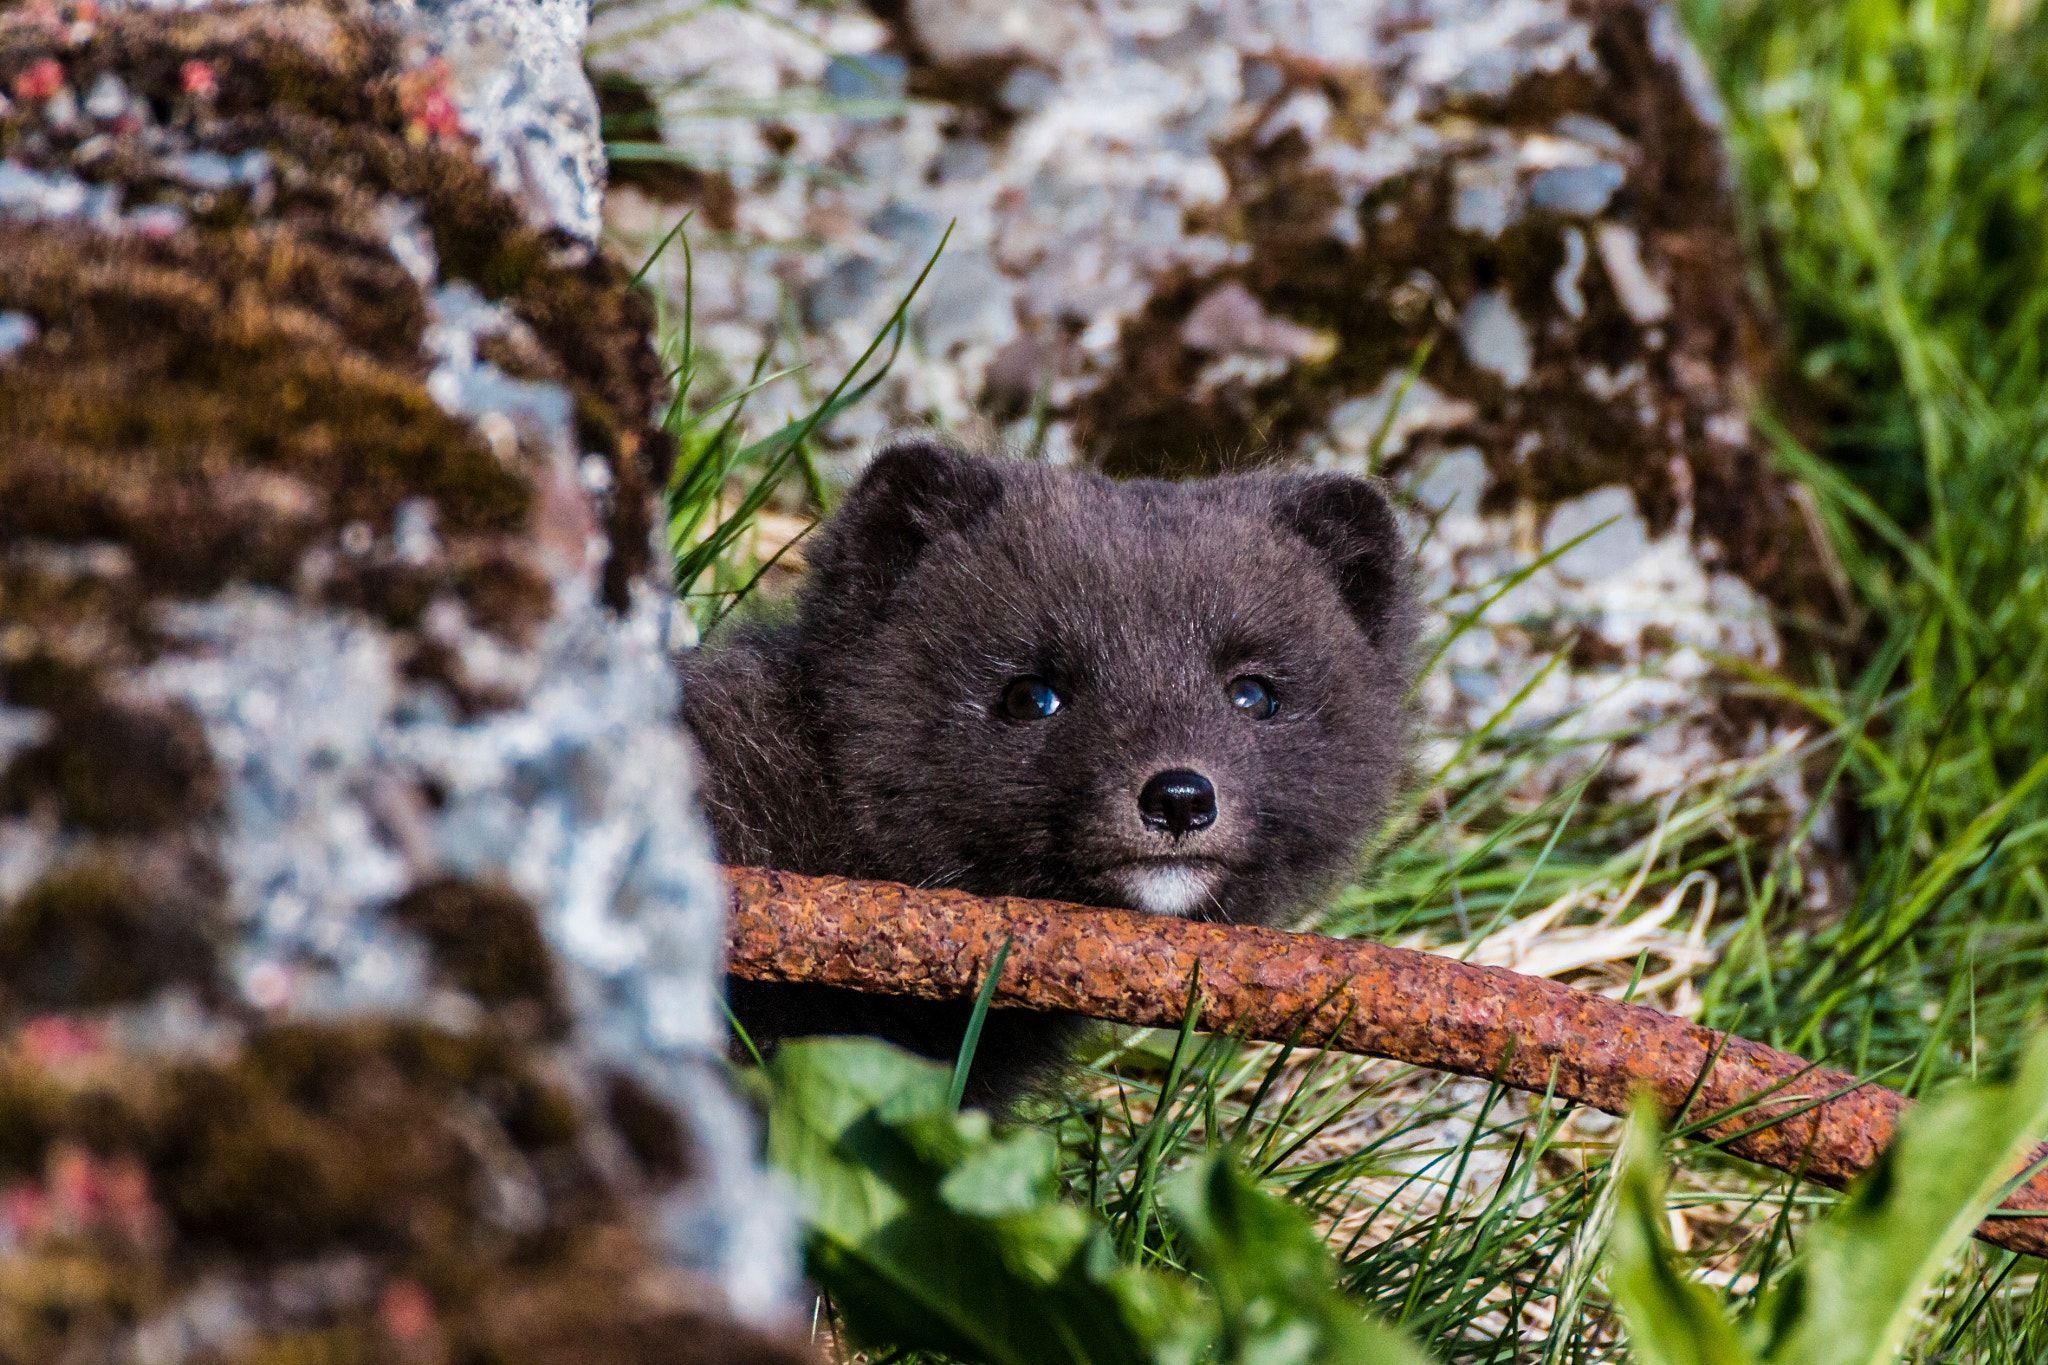 Iceland-Westfjords-Hesteyri-Arctic Fox pups - Iceland-Westfjords-Hesteyri-Arctic Fox pups